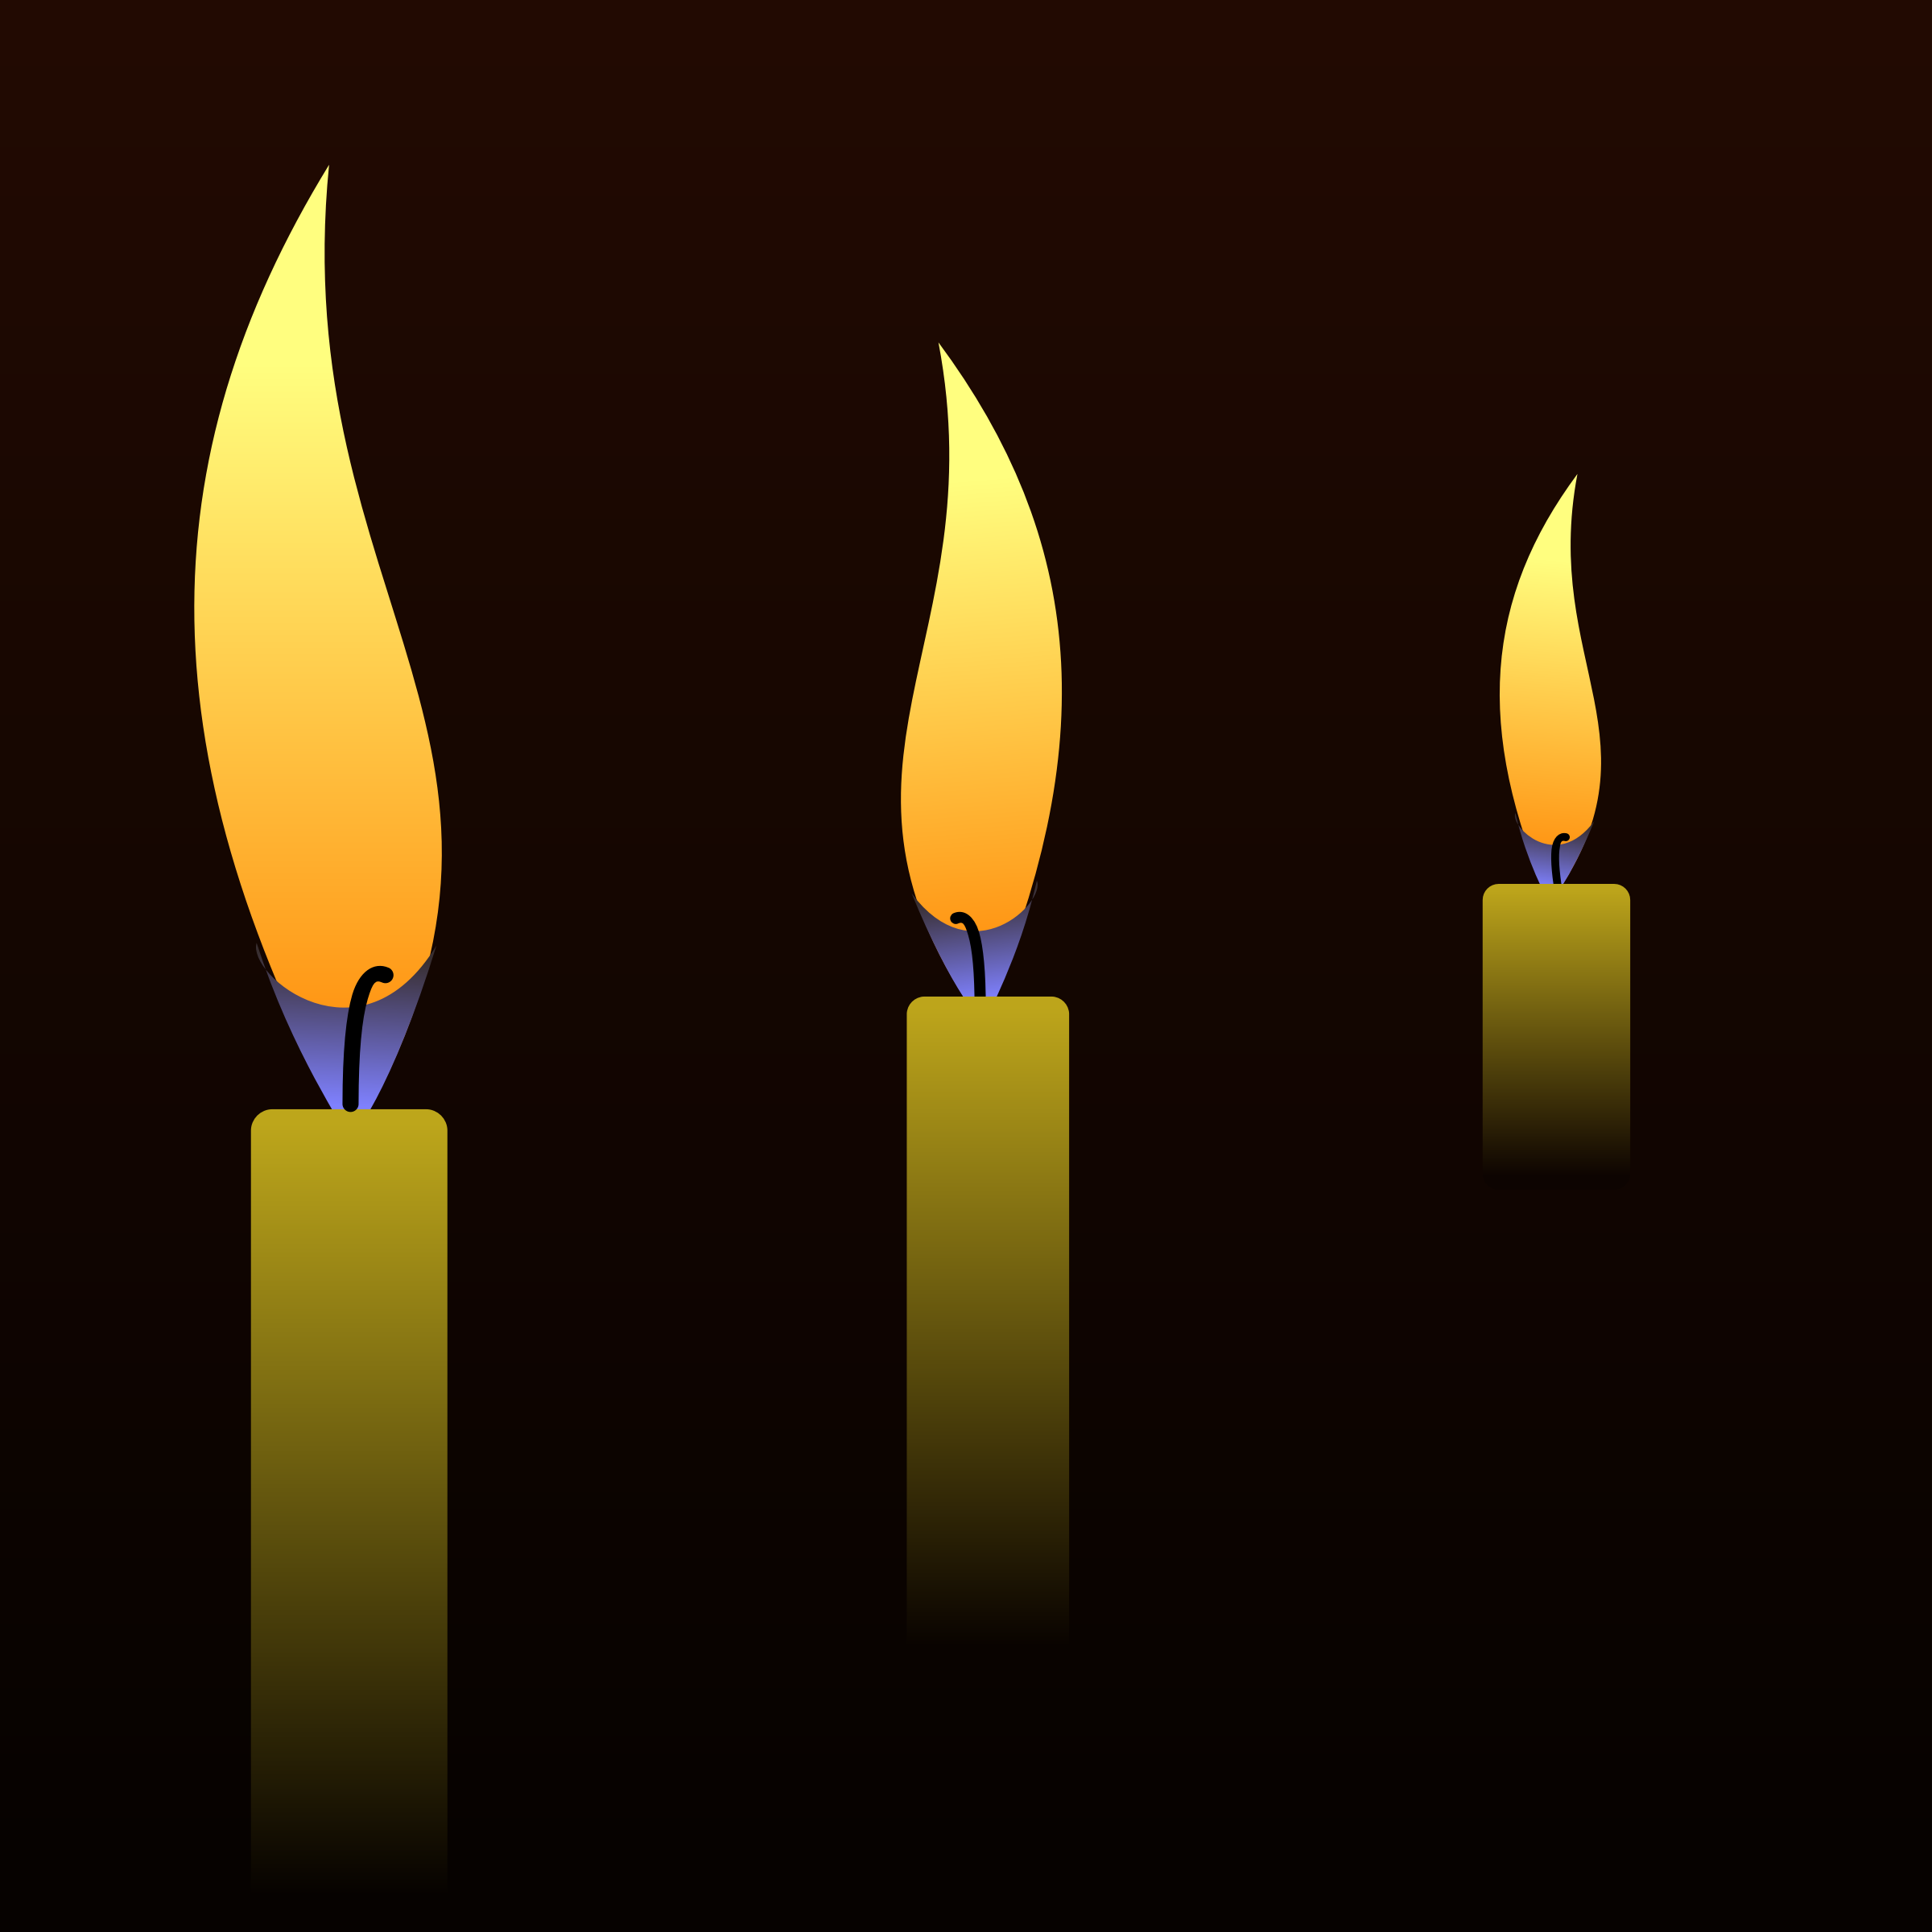 Candles in the Night by PhilipBarrington